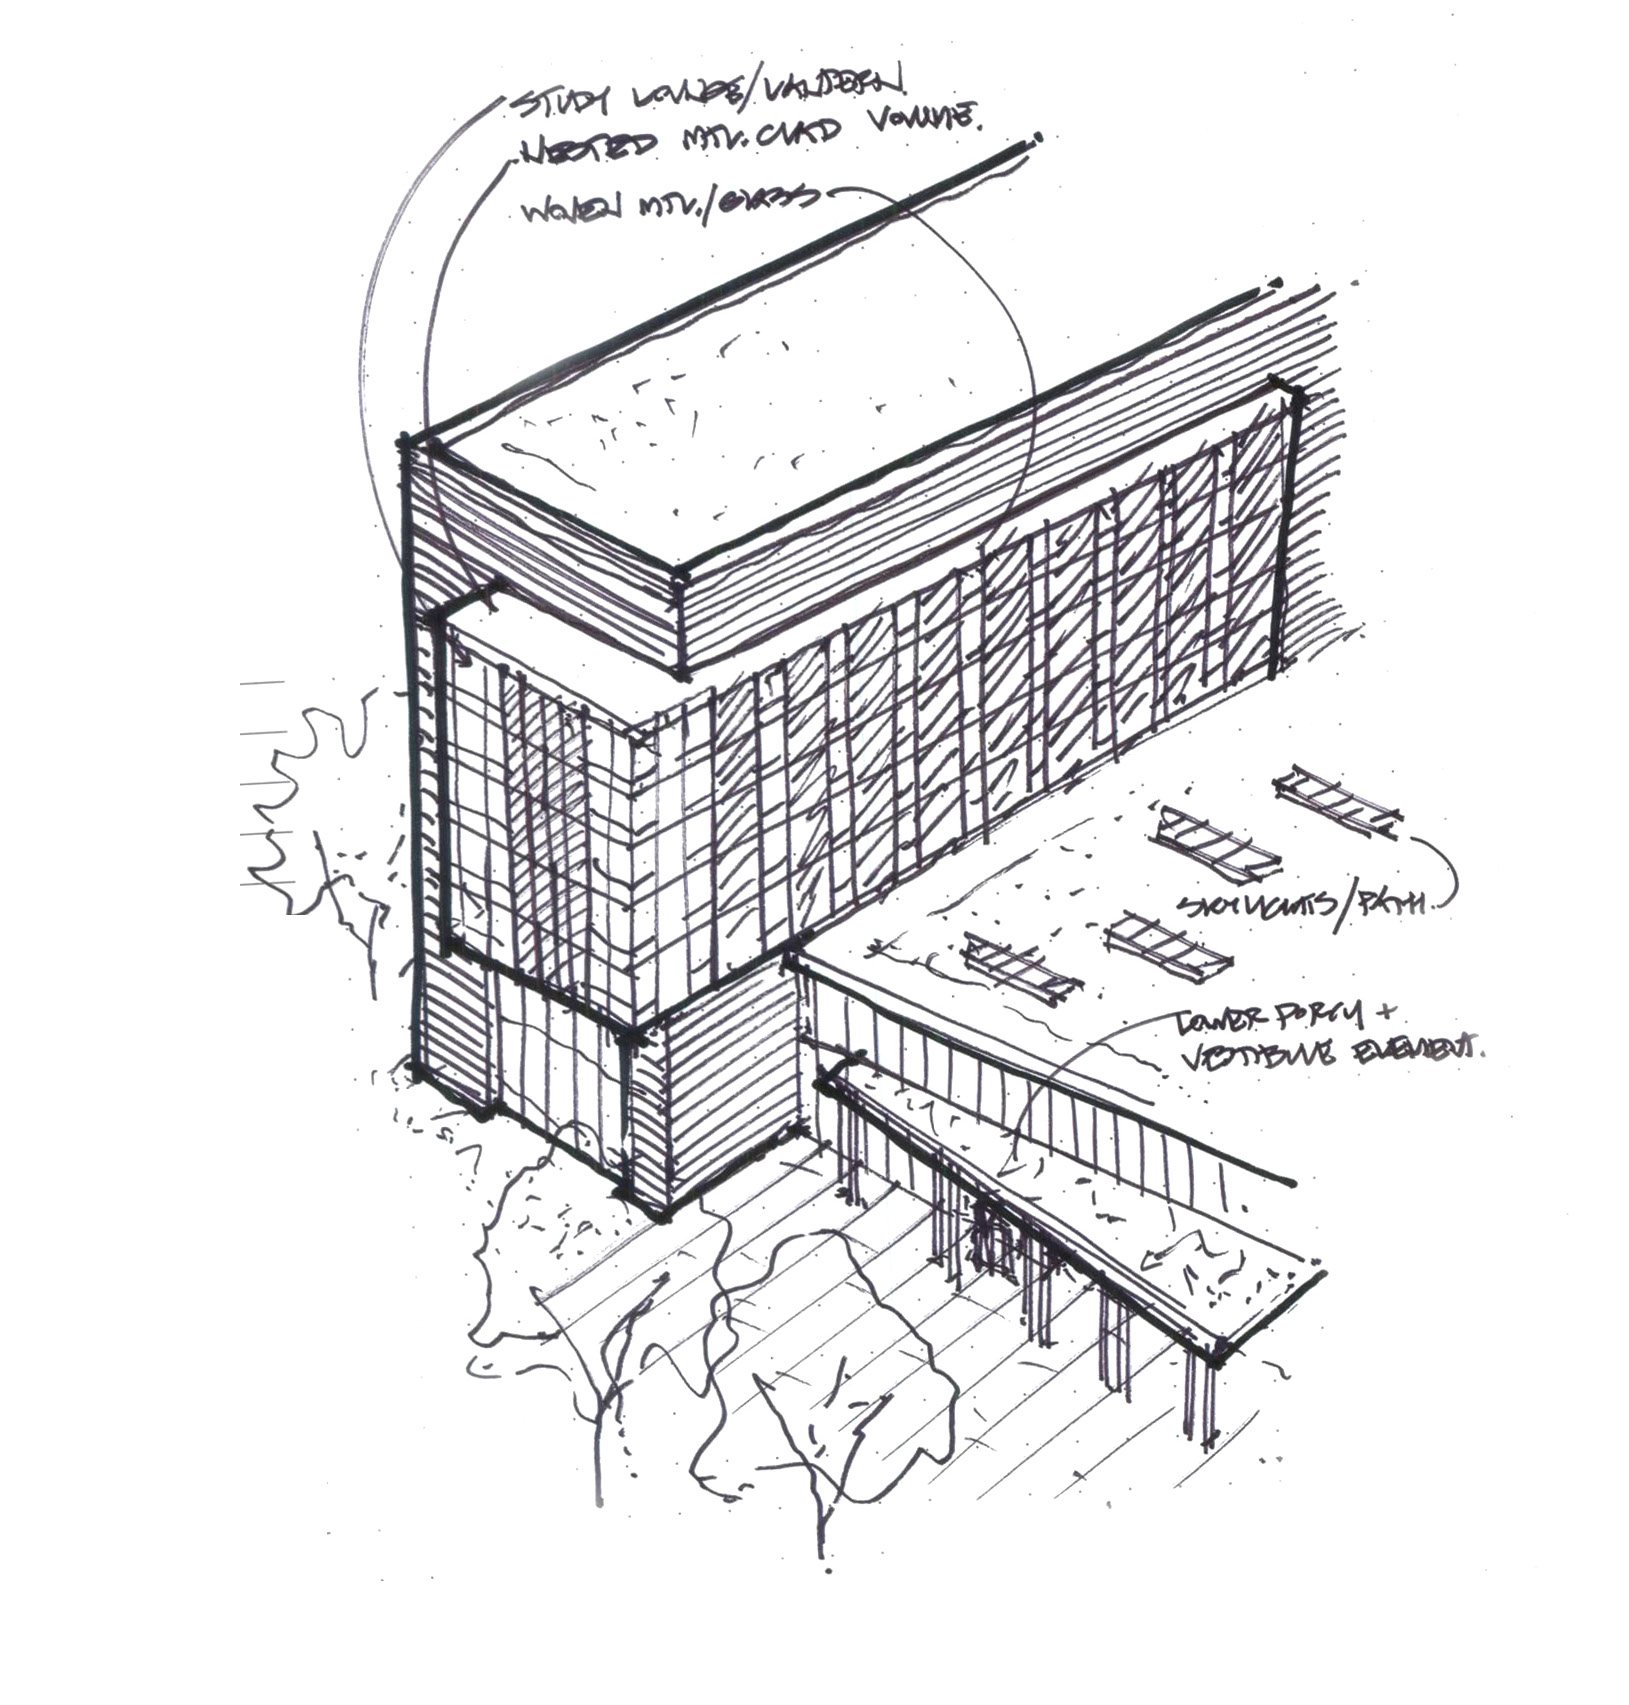 2019-09-24_Design Review Board_FINAL_Page_23_Image_0001.jpg